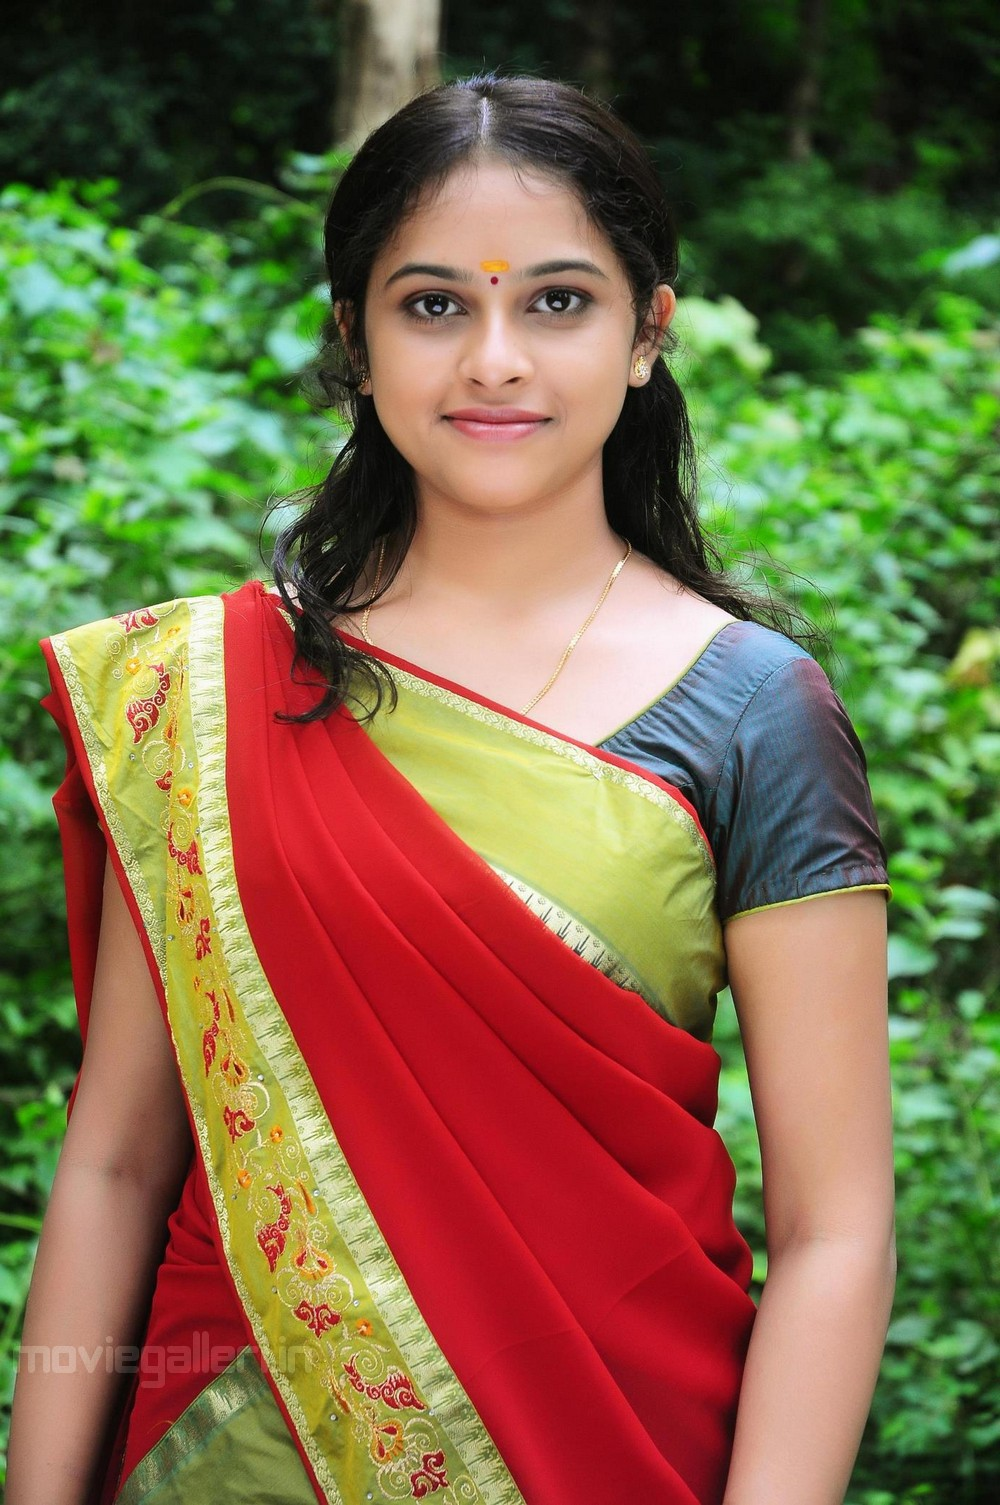 Actress Sri Divya Photos: Telugu Actress Sri Divya In Saree Photo Gallery